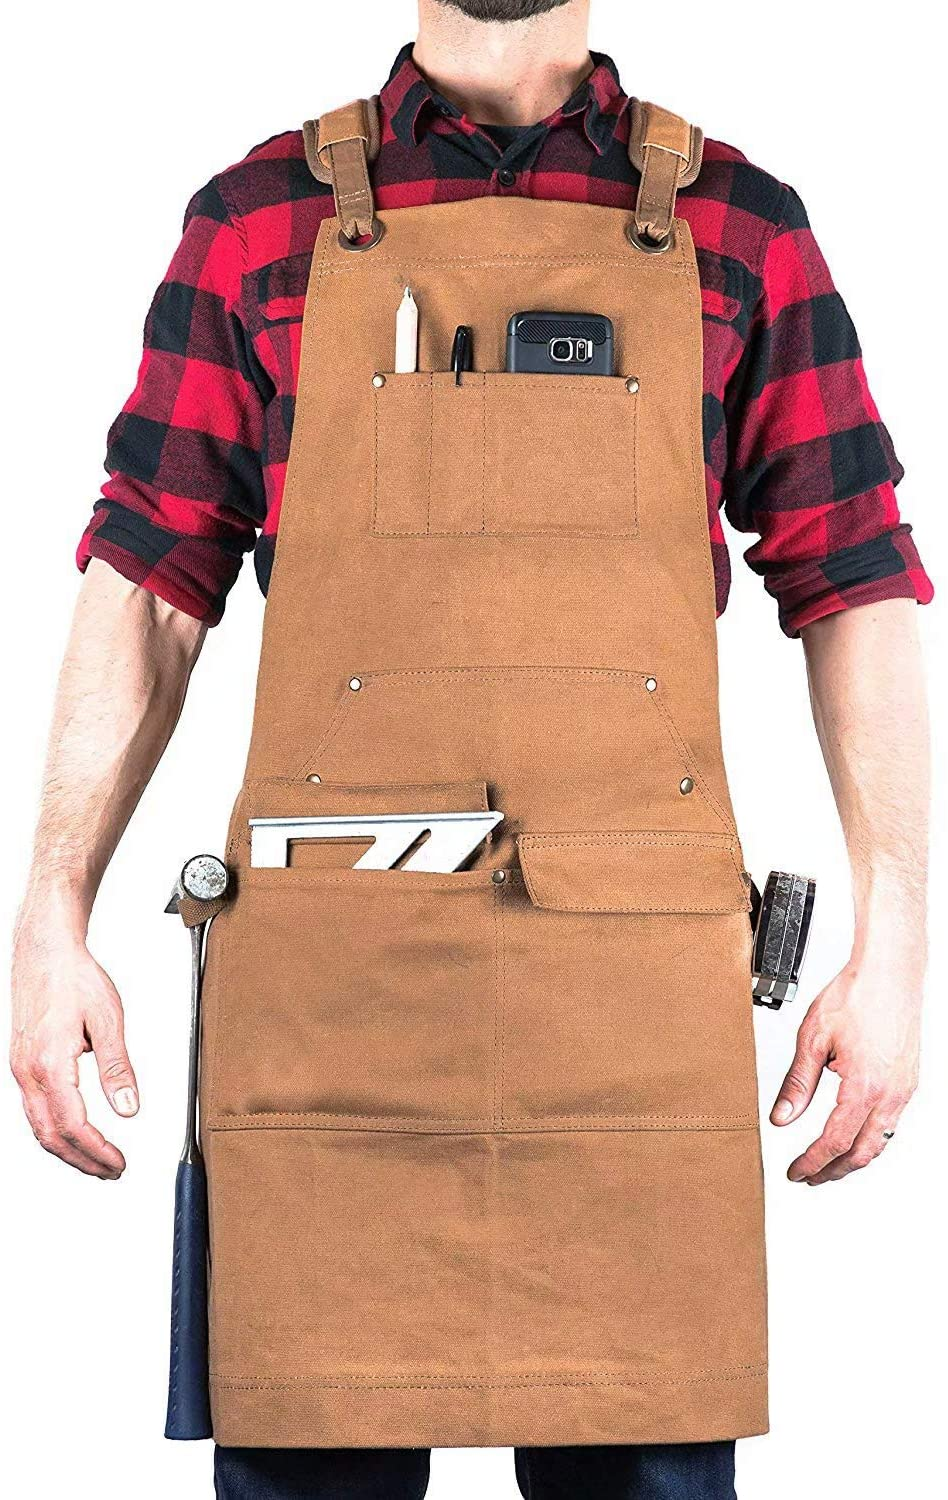 Durable Goods - Woodworking Edition - Waxed Canvas Apron (Brown) - Padded Straps, Quick Release Buckle, 2x Hammer Loops, Adjustable M to XXL